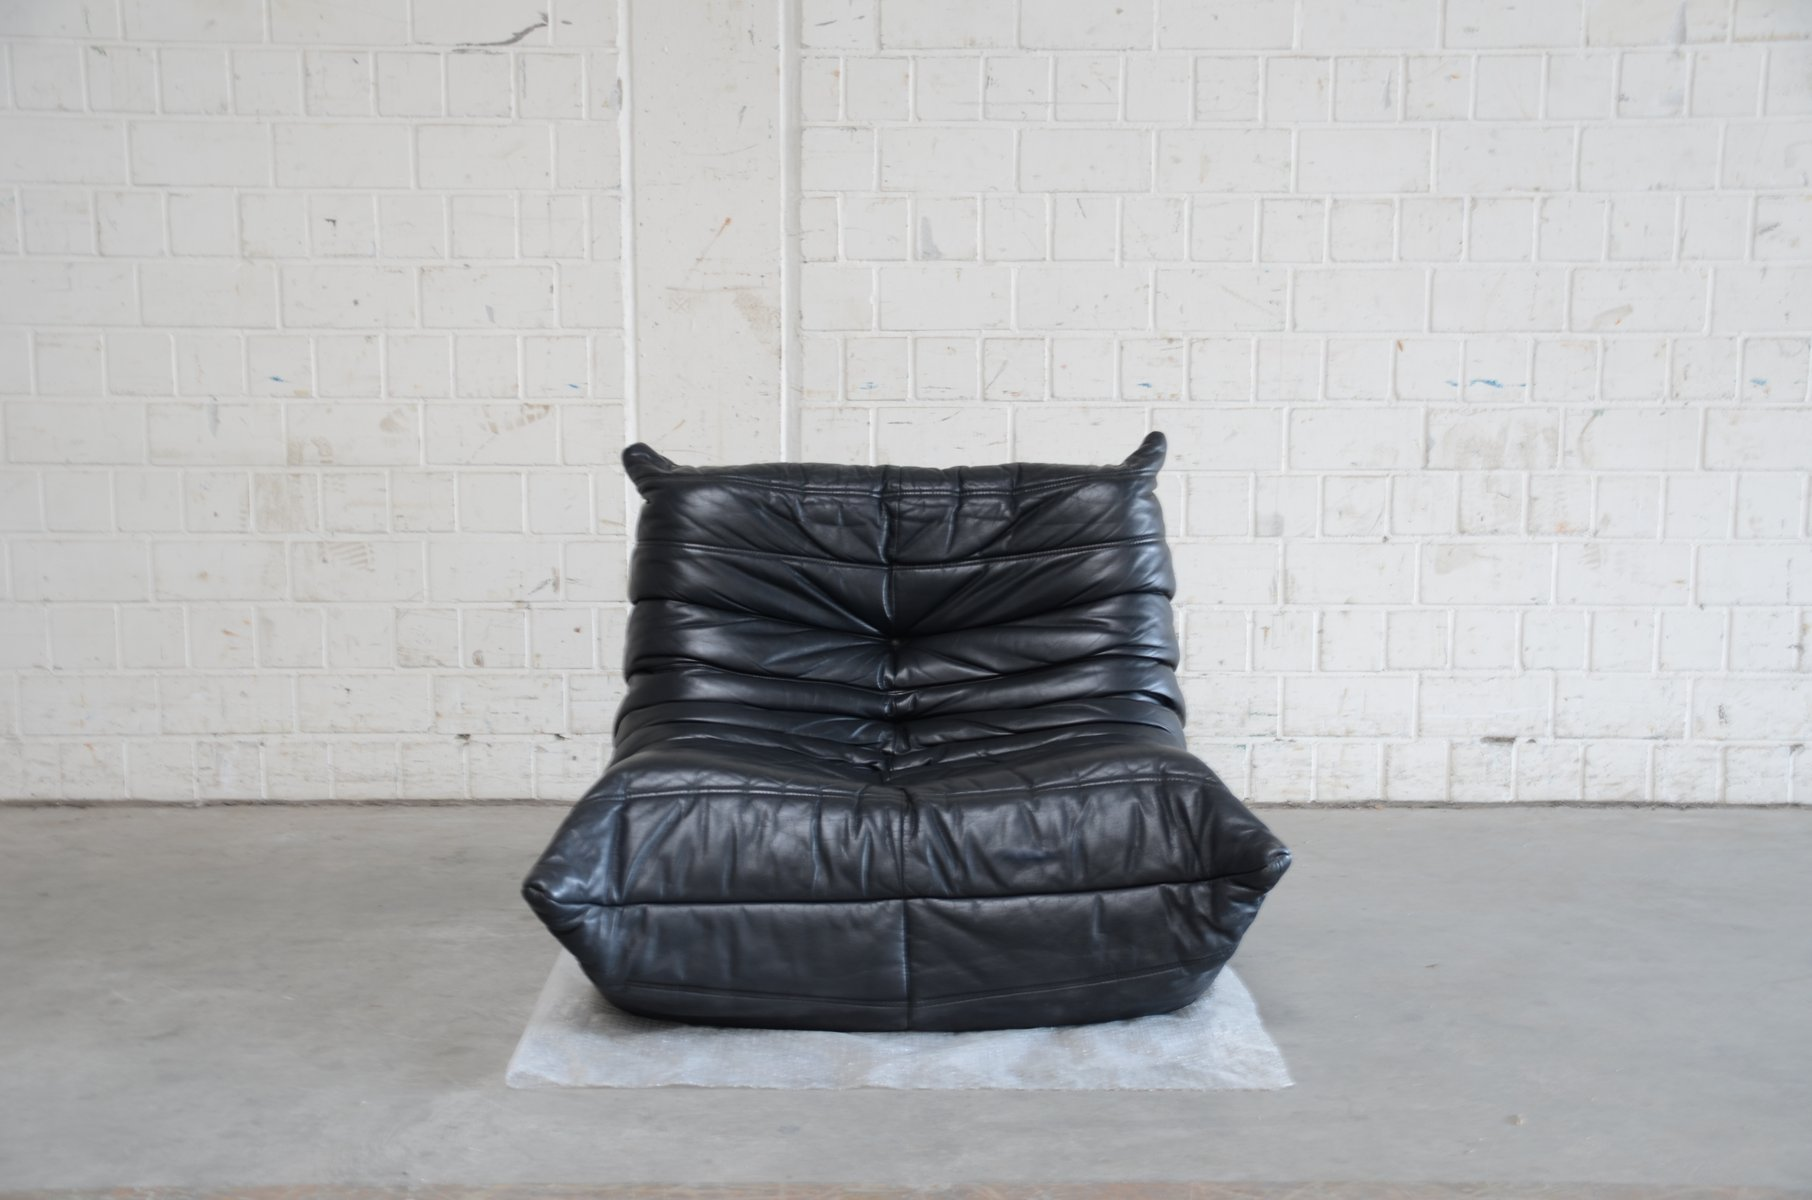 Togo Sofa Dimensions Vintage Togo Chair And Ottoman In Black Leather By Michel Ducaroy For Ligne Roset